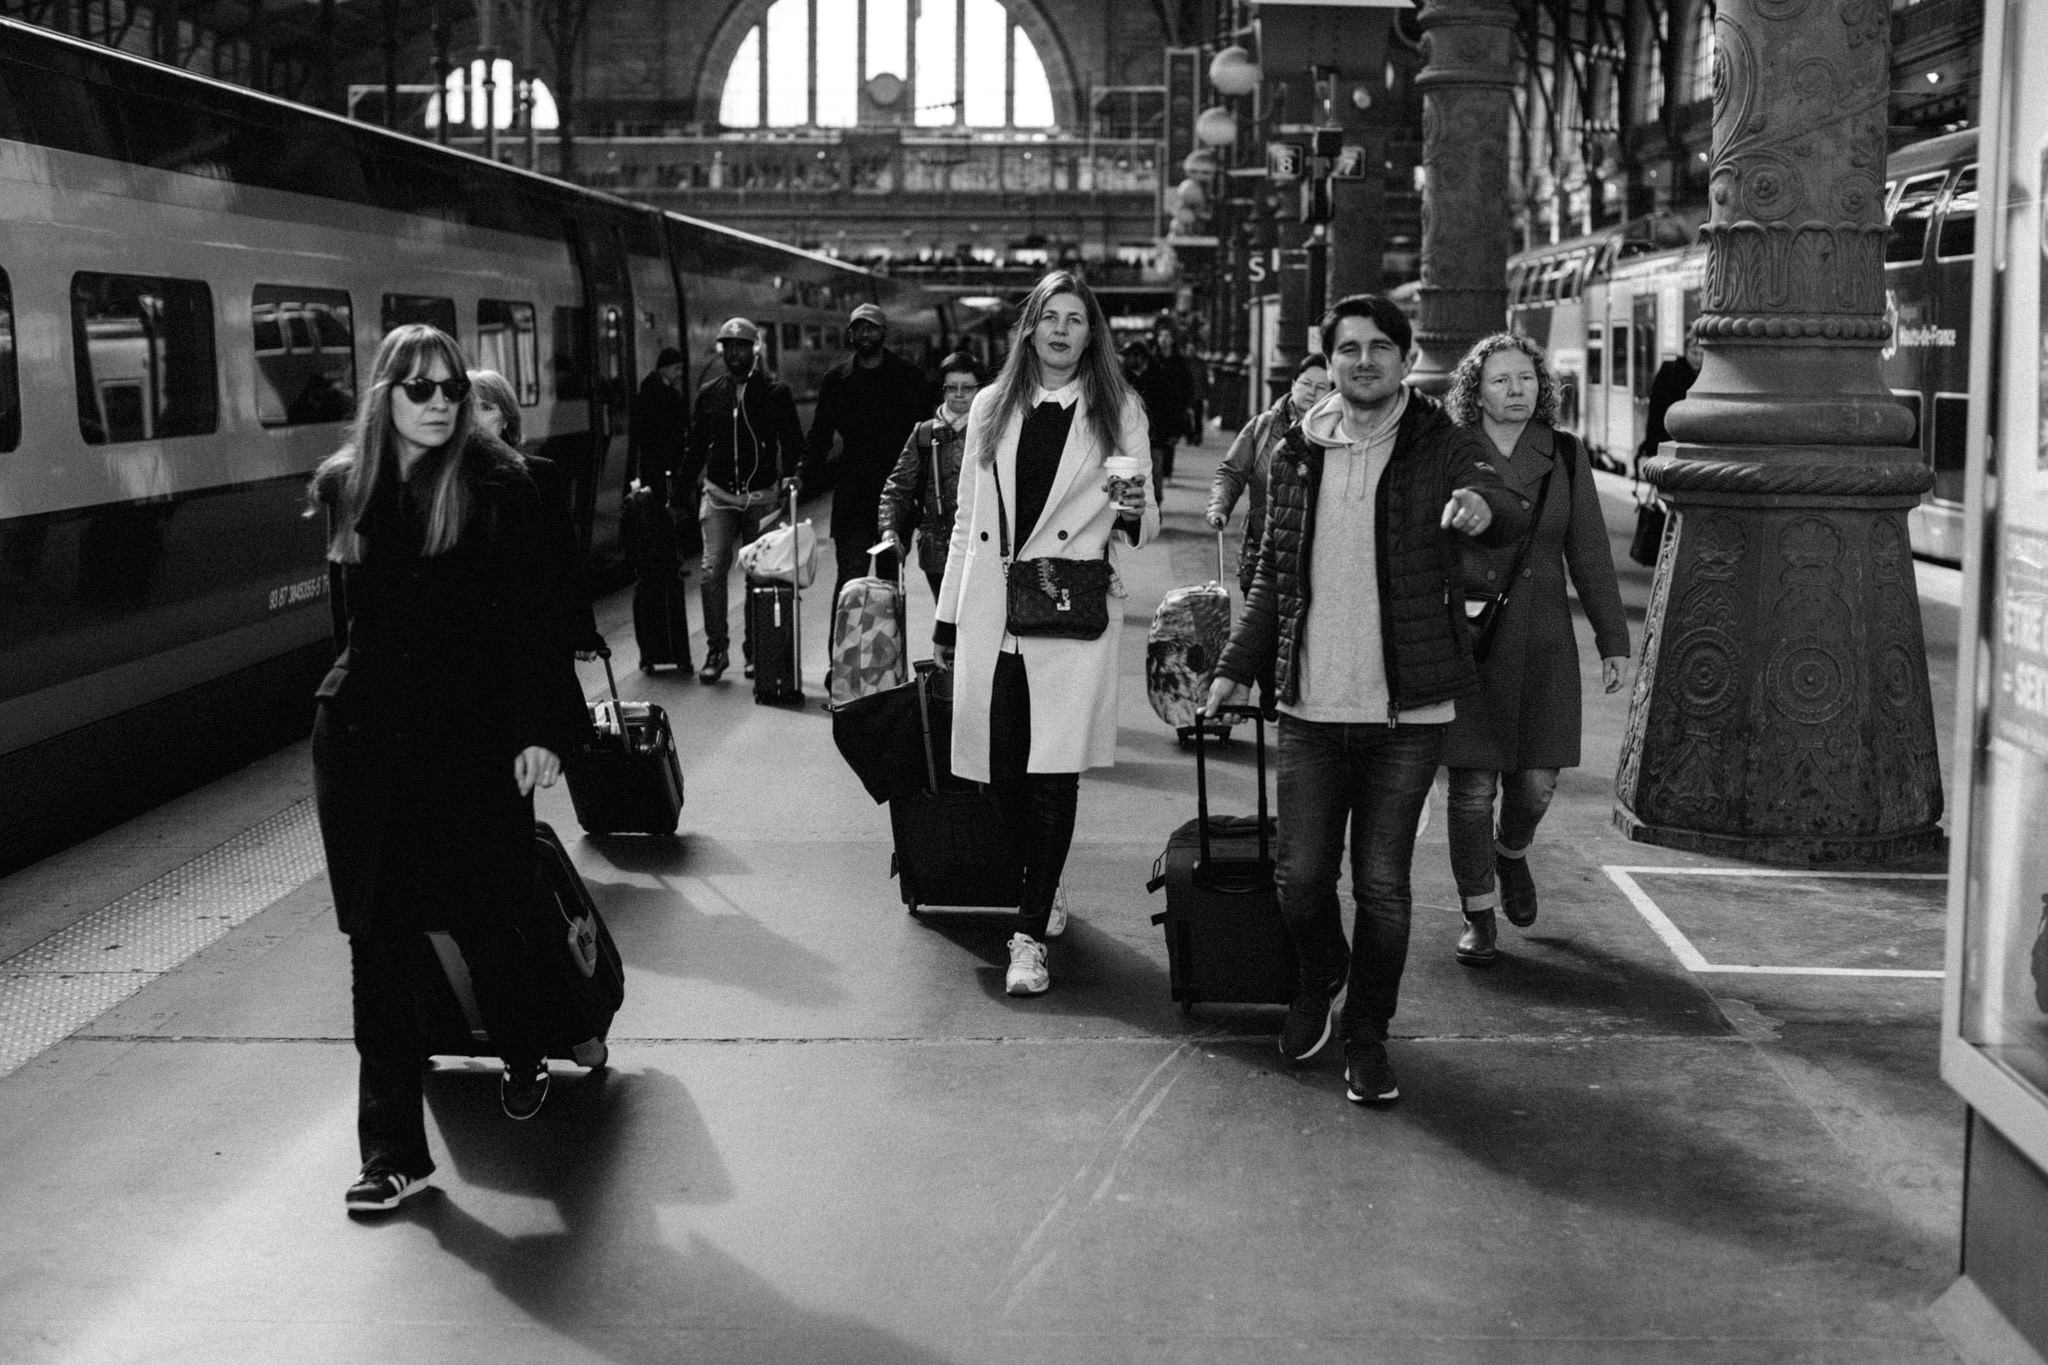 People walking on Gare du Nord, Paris, France